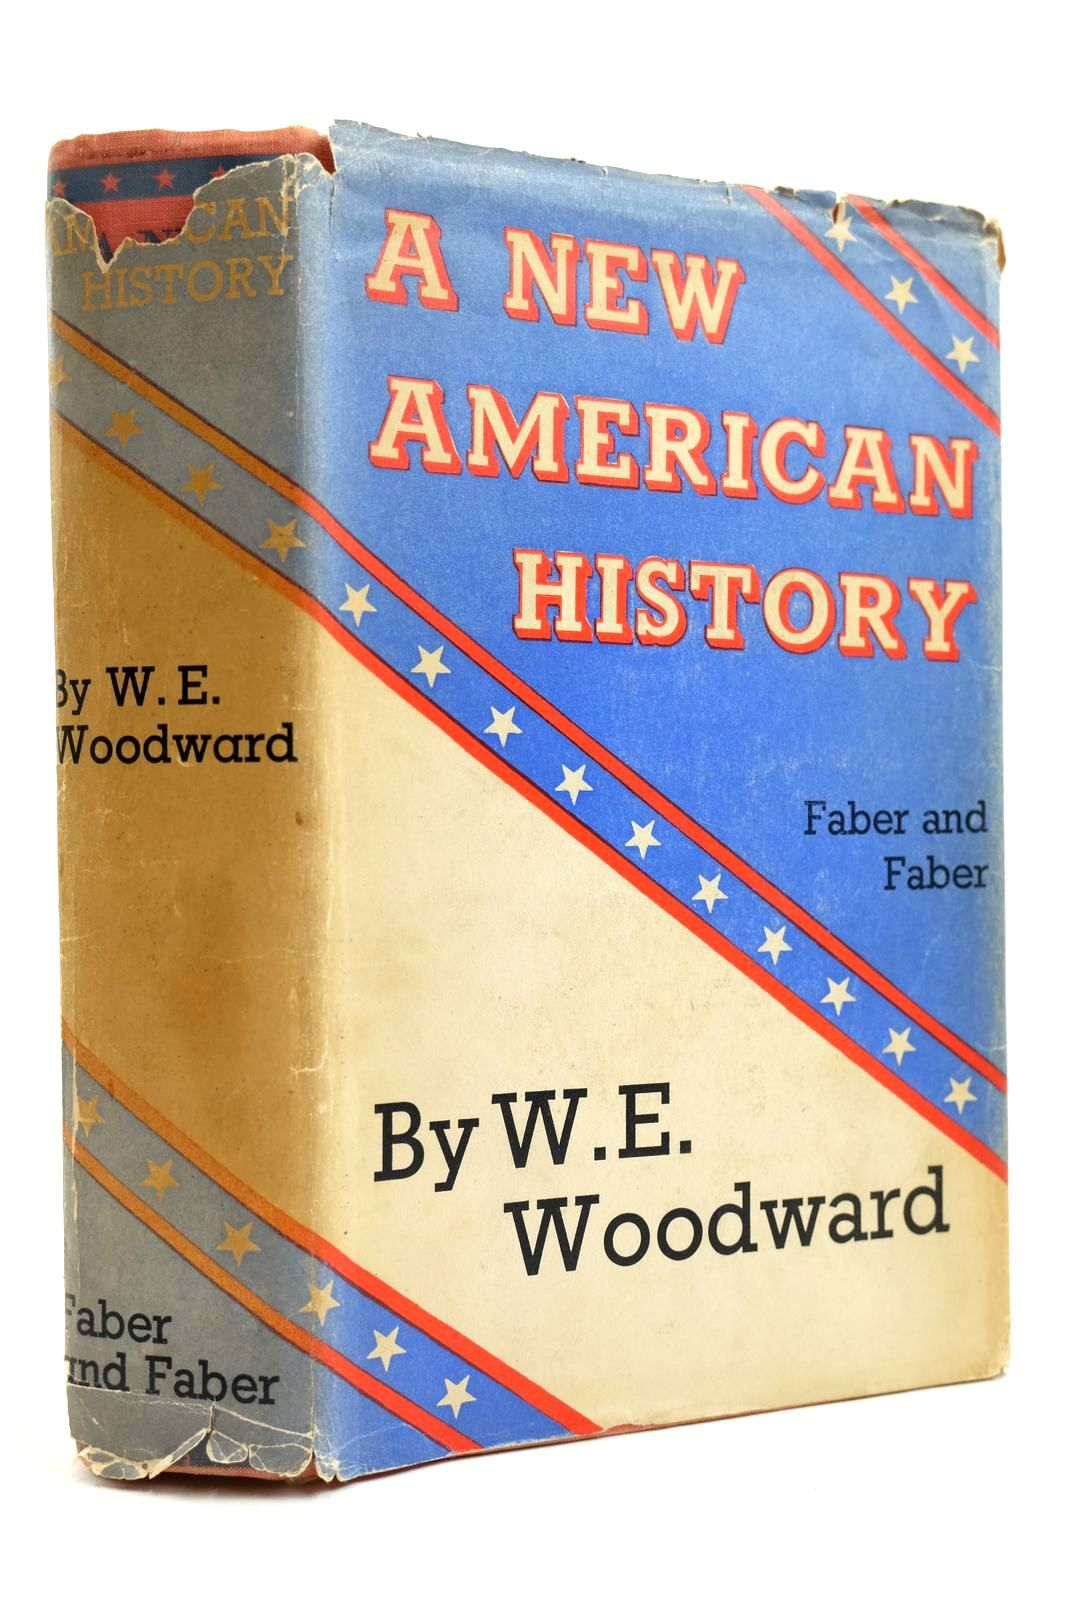 Photo of A NEW AMERICAN HISTORY written by Woodward, W.E. published by Faber & Faber Limited (STOCK CODE: 2131916)  for sale by Stella & Rose's Books